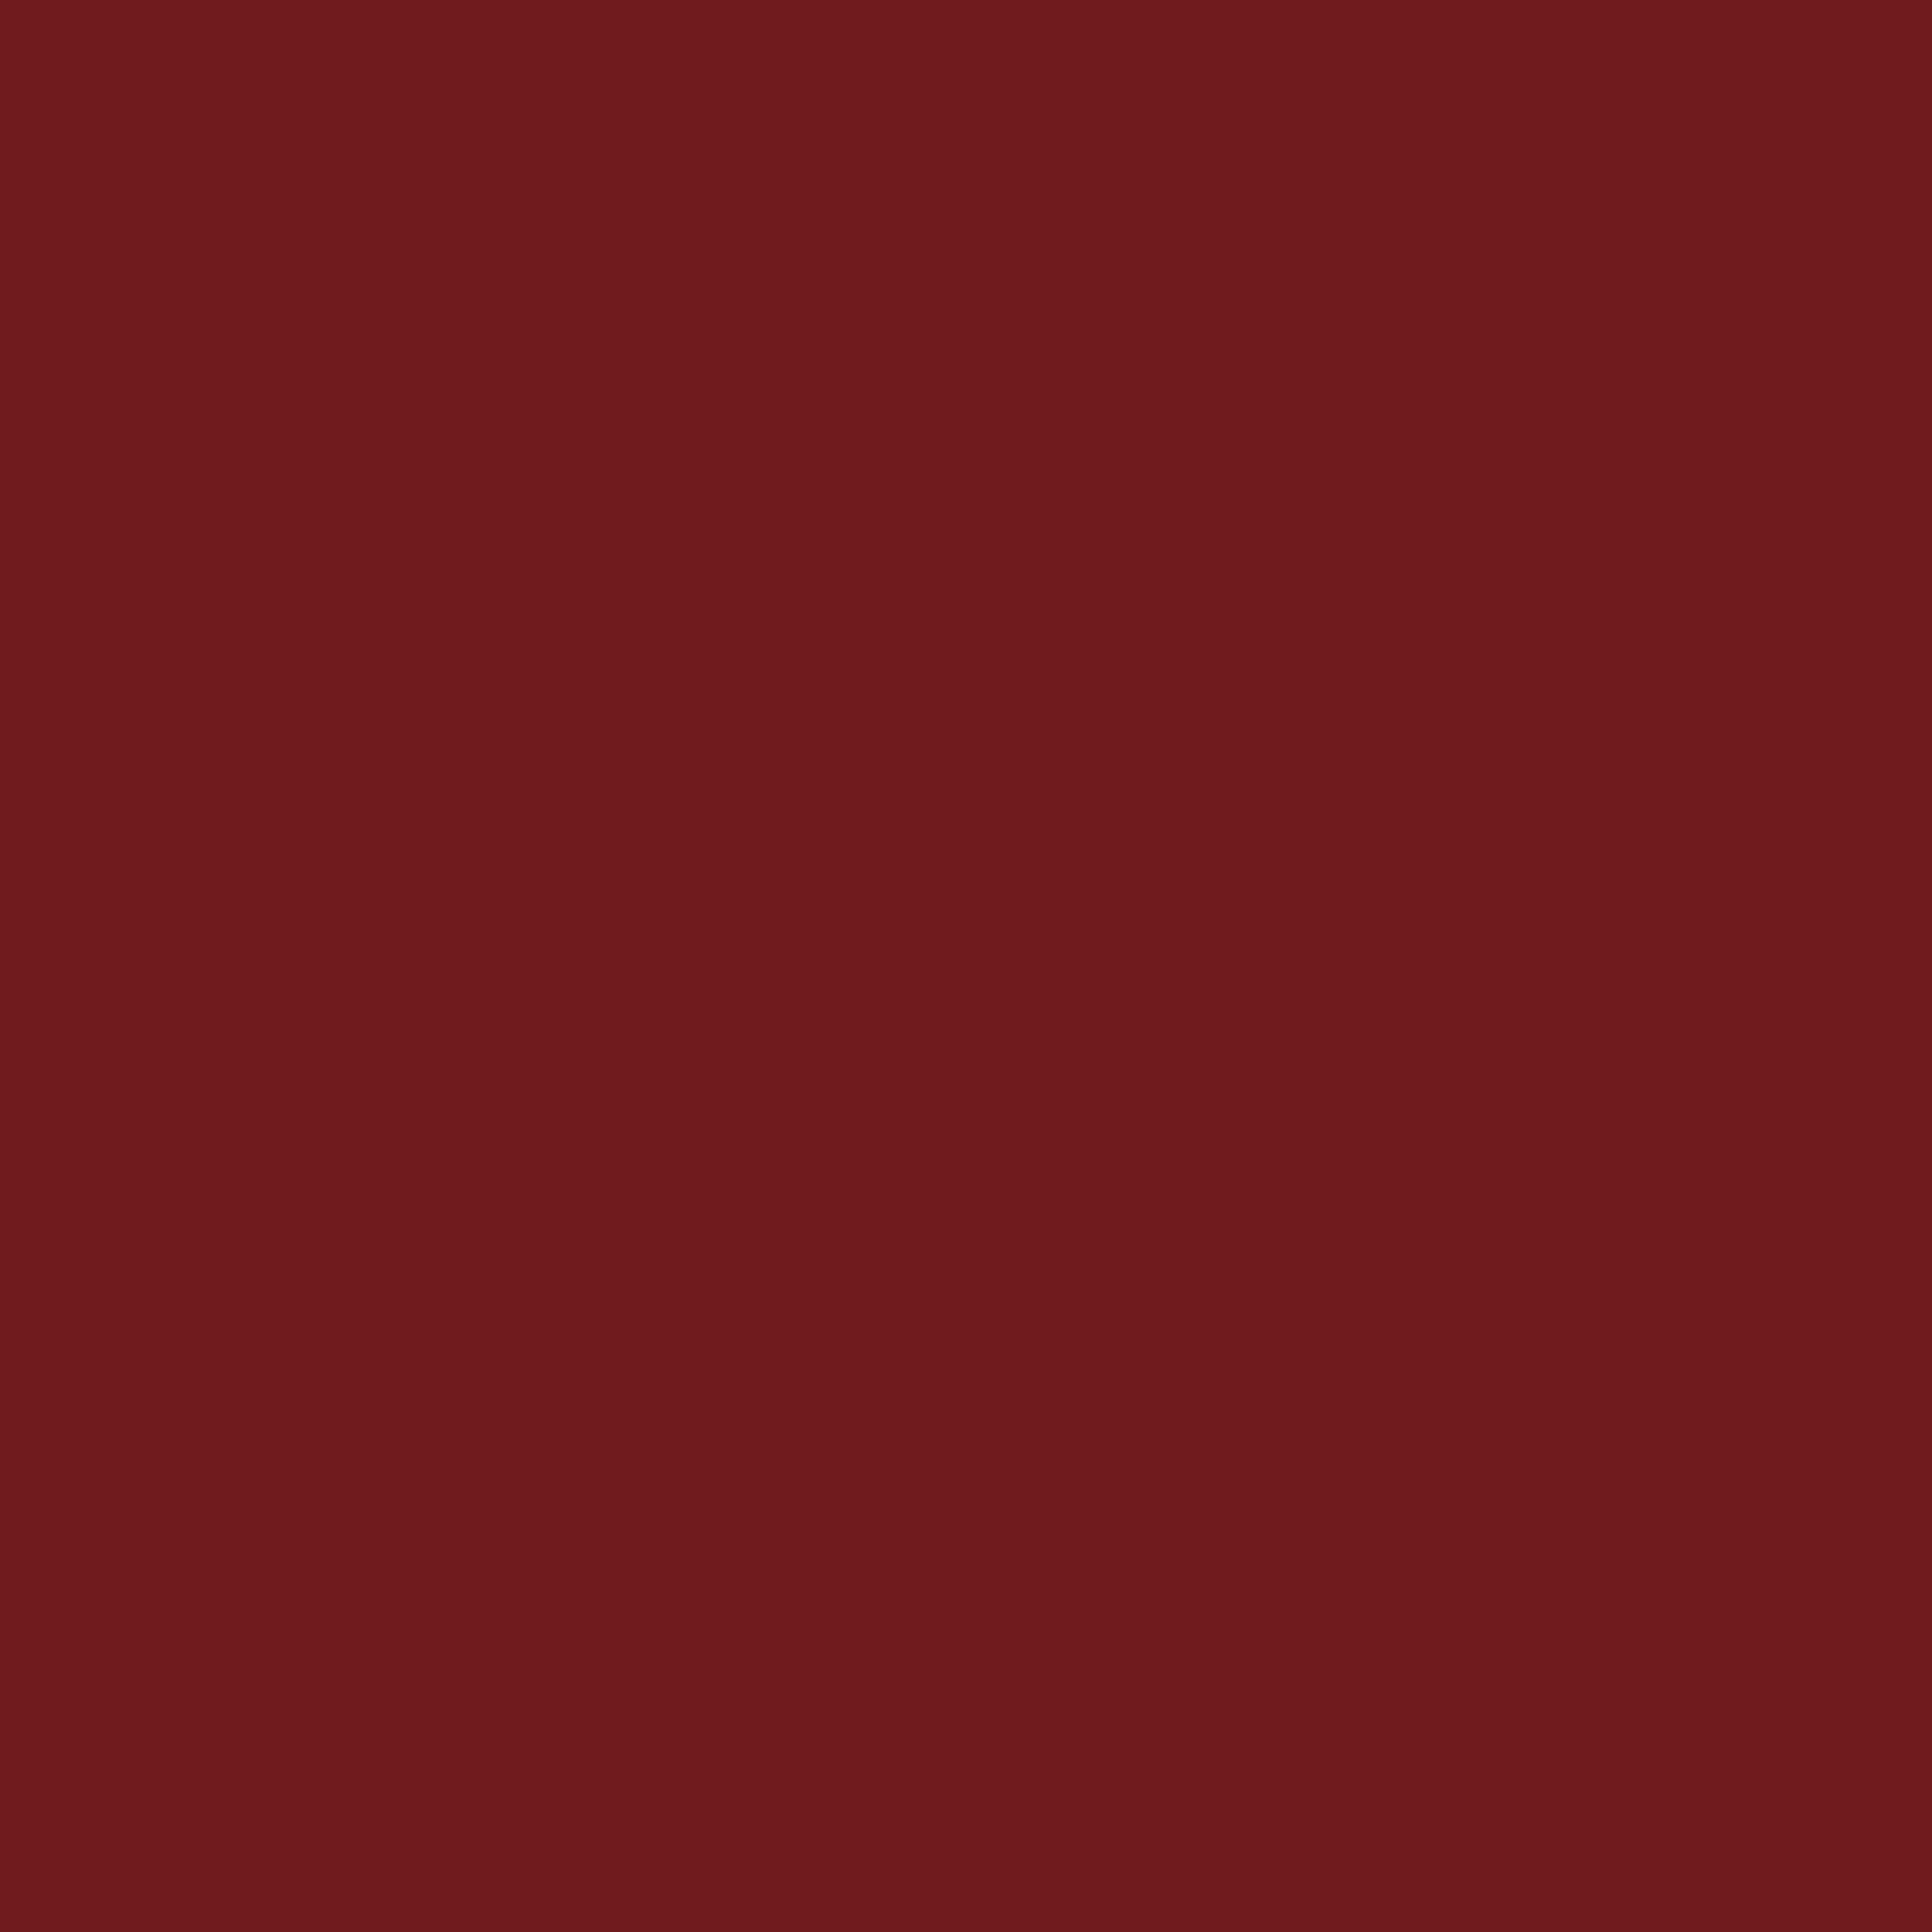 2048x2048 Prune Solid Color Background